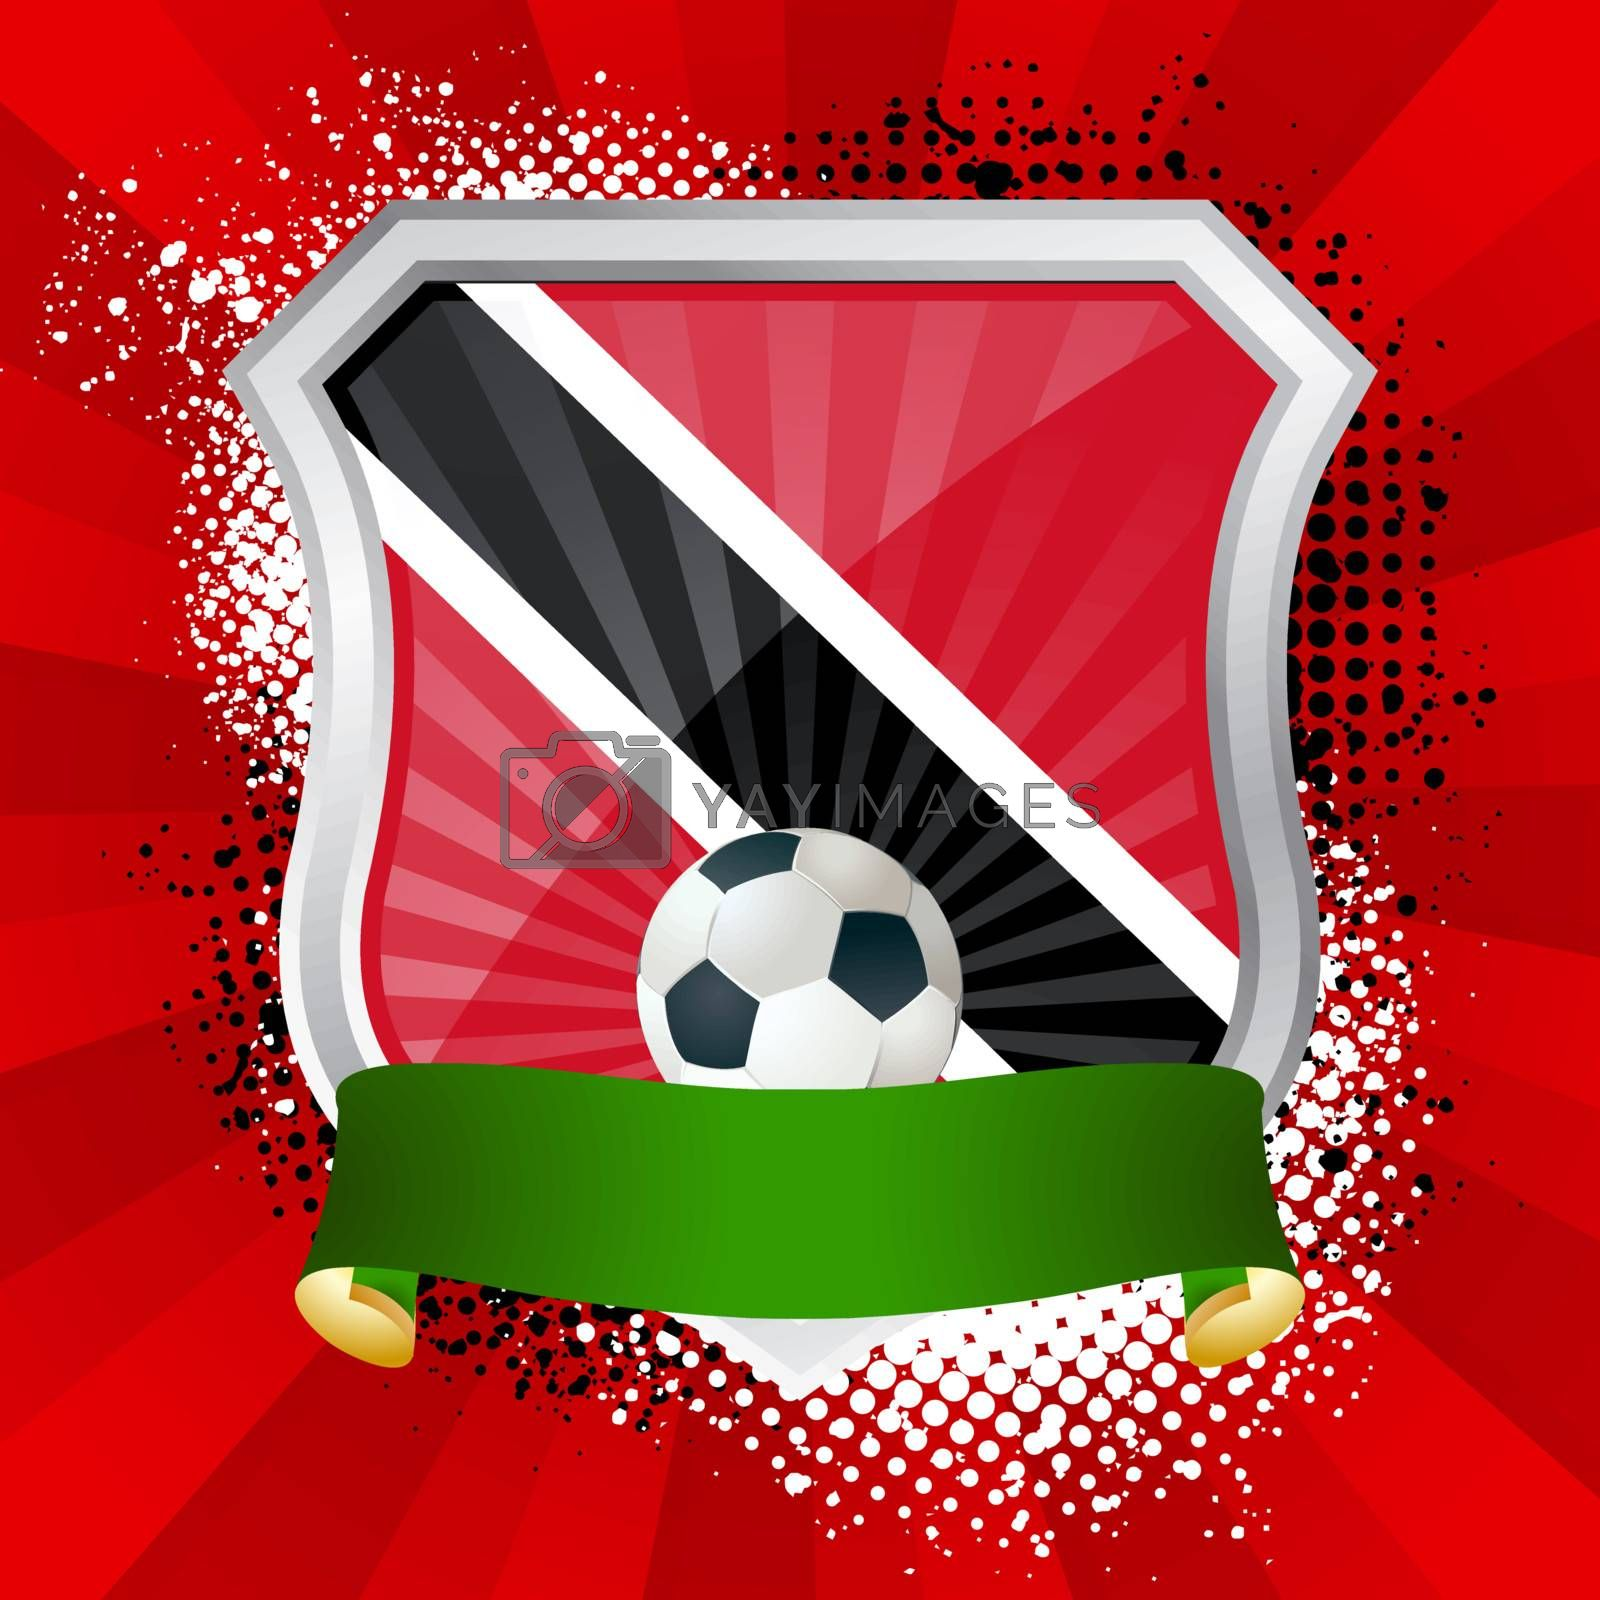 EPS 10. Shiny metal shield on bright background with flag of Trinidad and Tobago